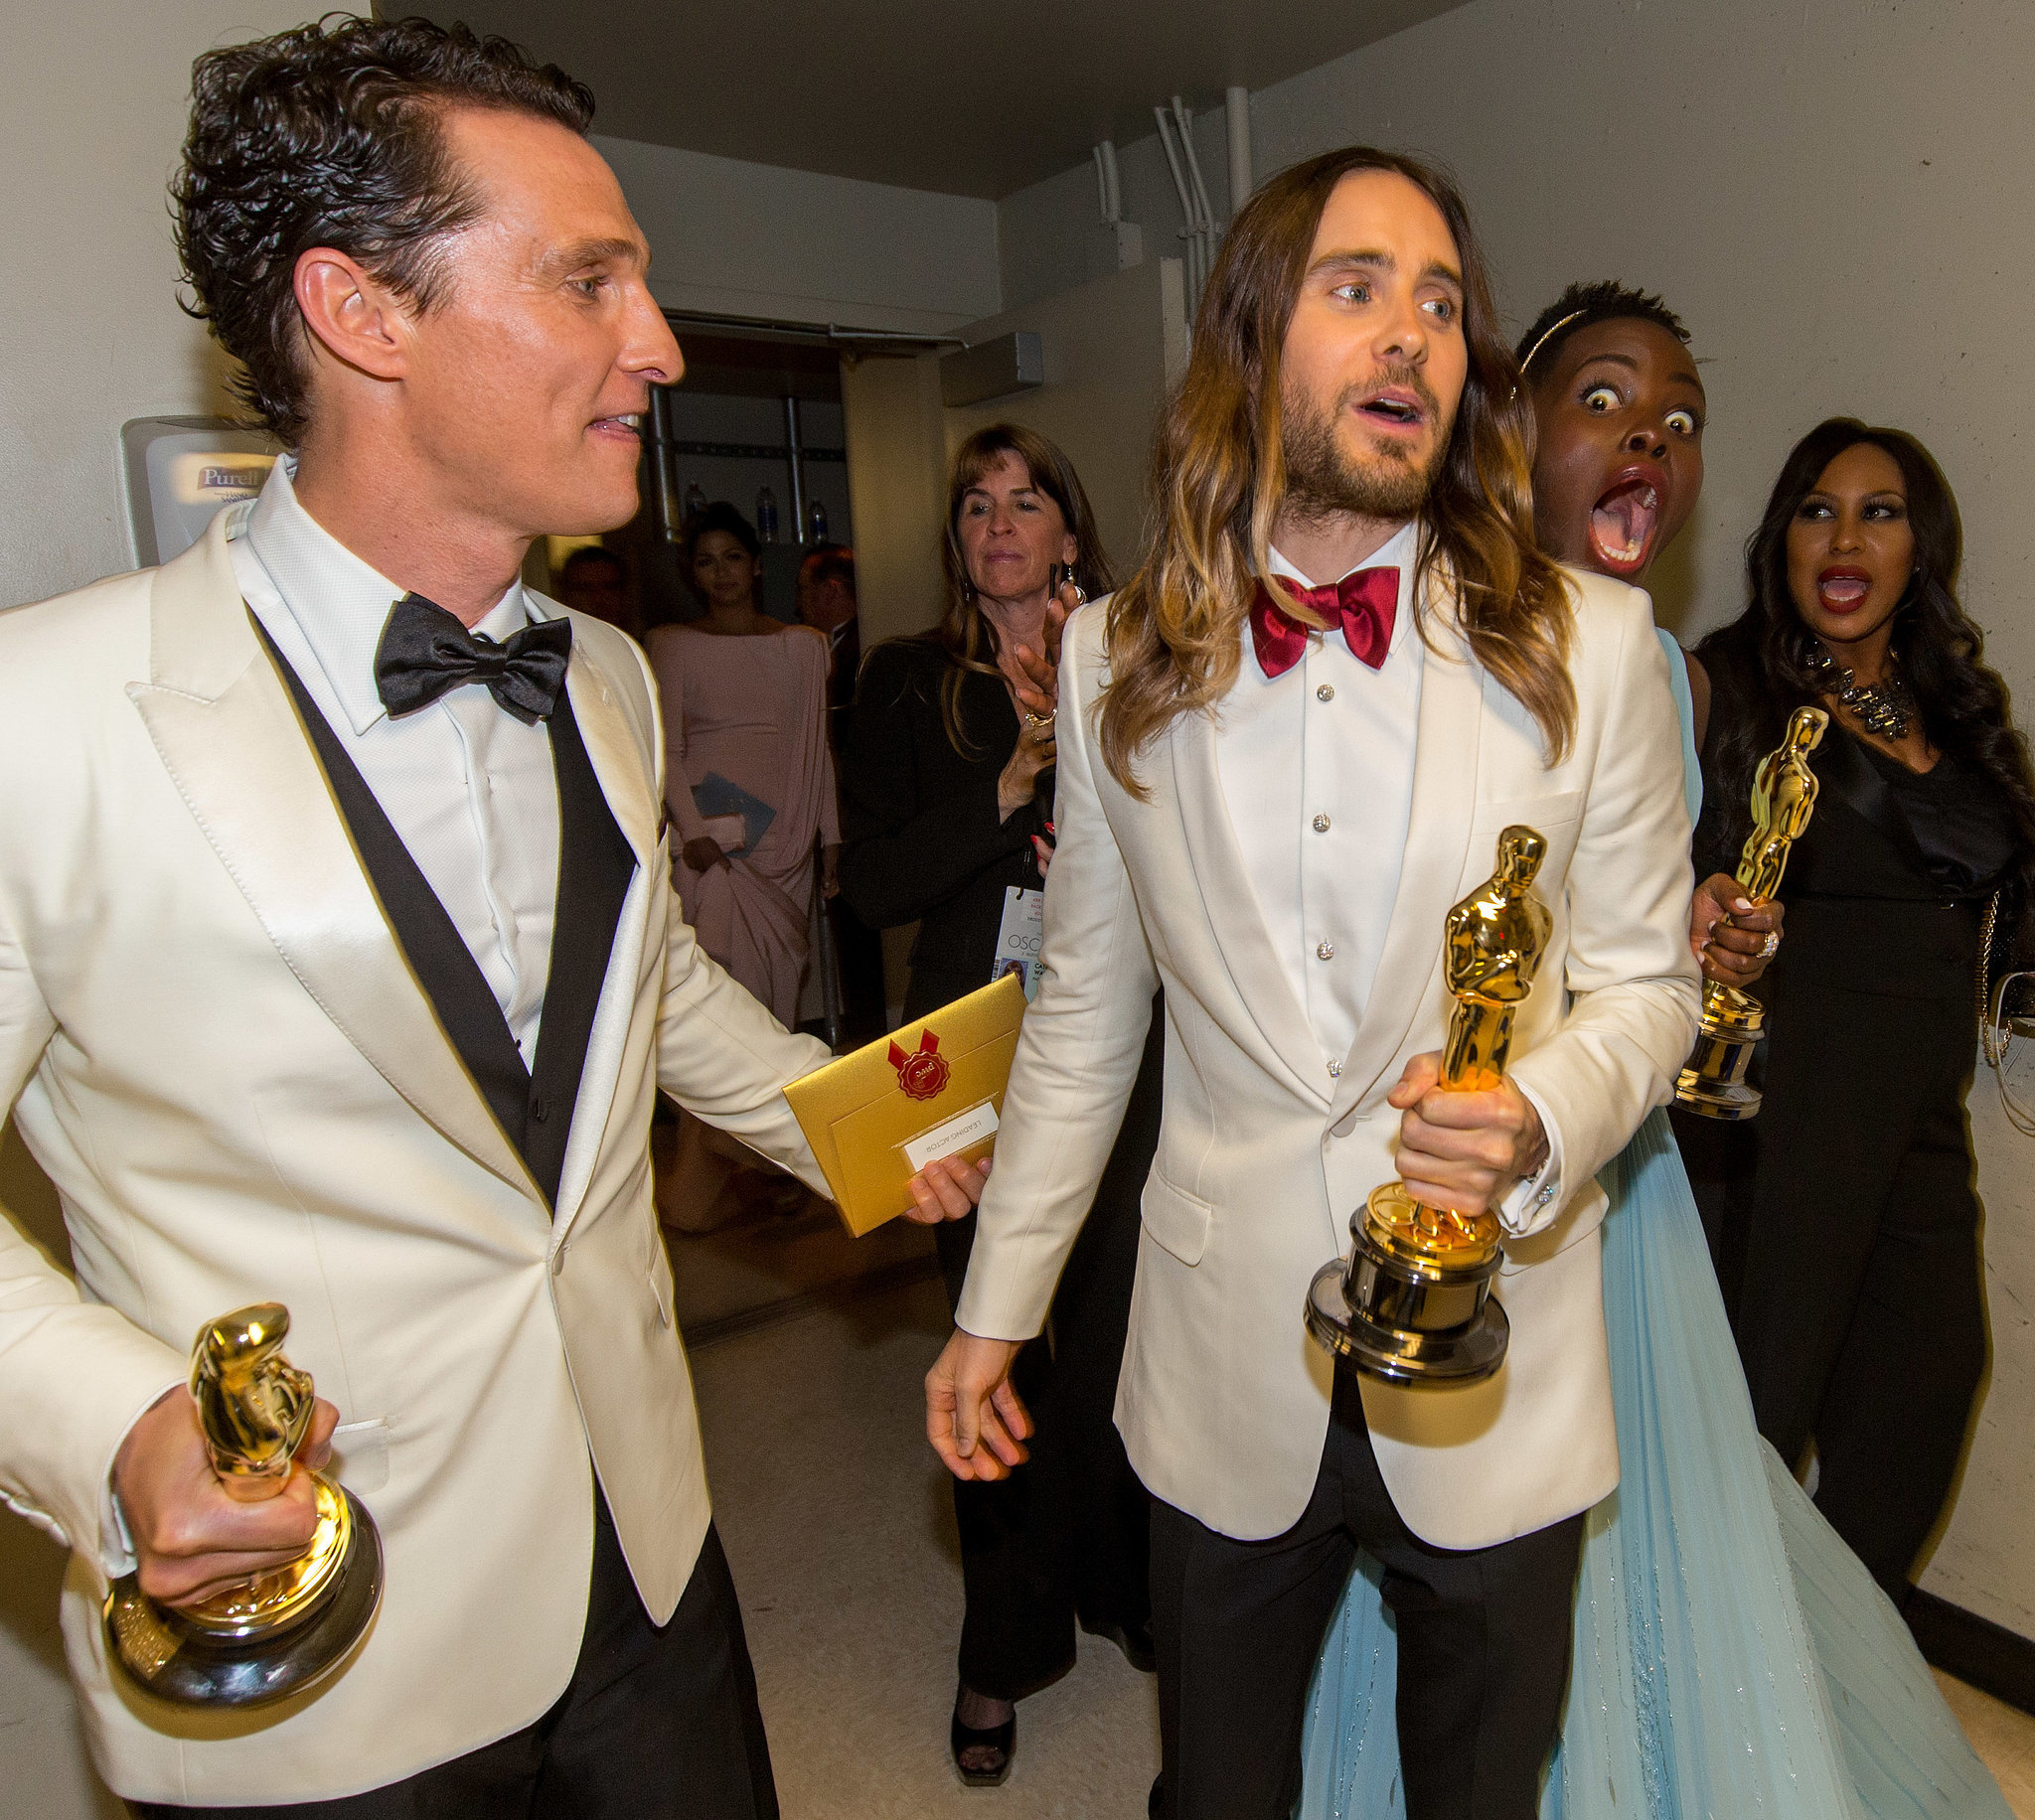 There were gold statues all around when Lupita Nyong'o photobombed Jared Leto while Matthew McConaughey looked on backstage.